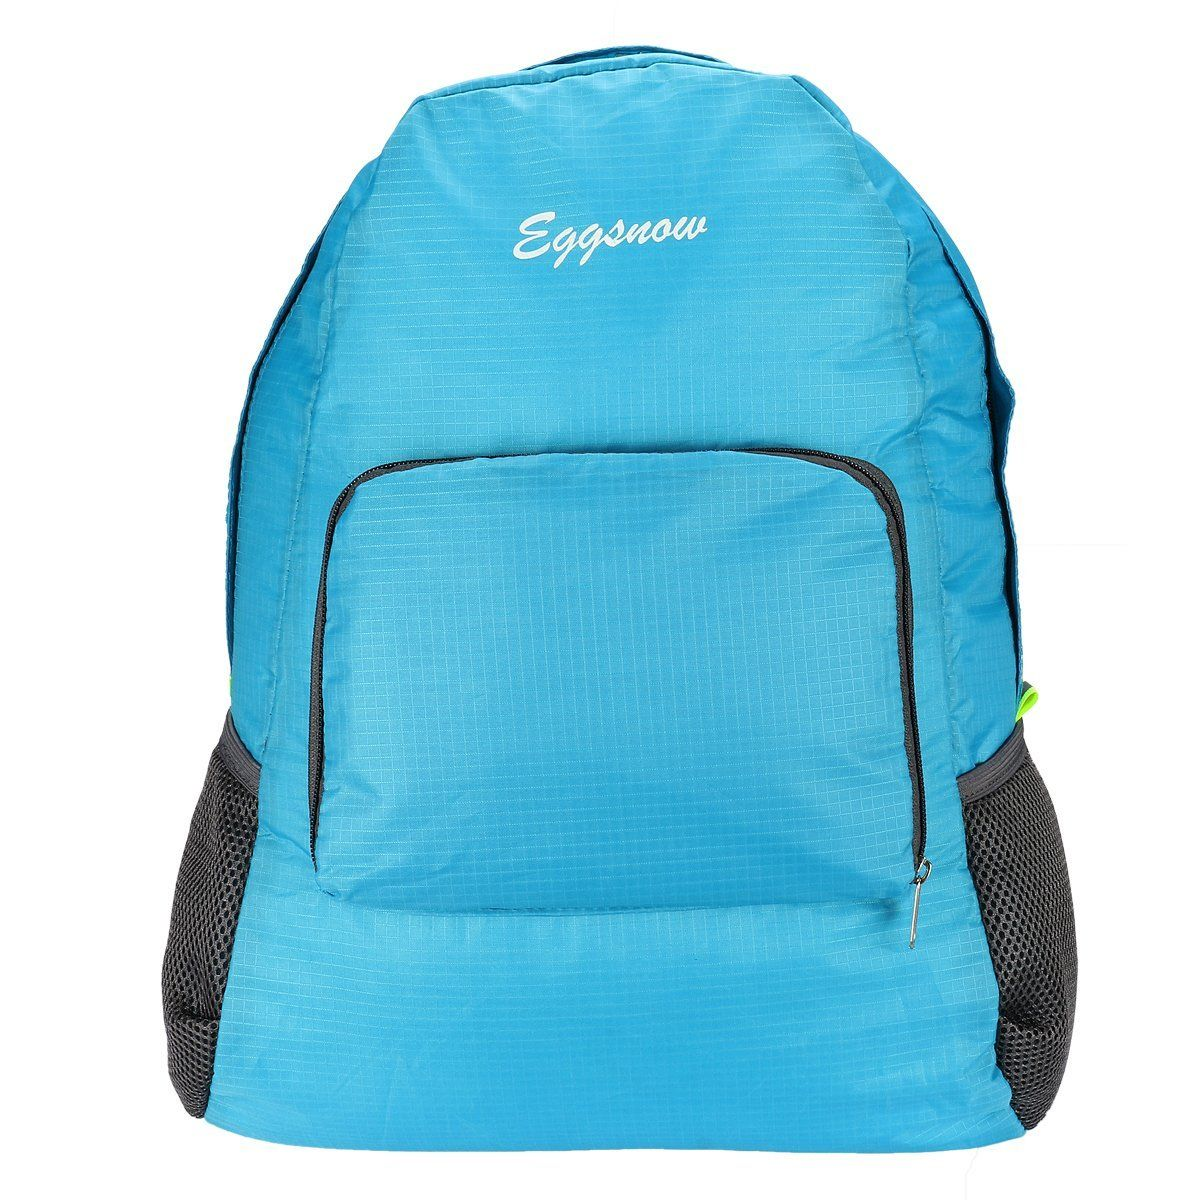 0dc5984ce9ff Eggsnow Travel Backpack Daypack, Lightweight, Ultra-Large Capacity ...